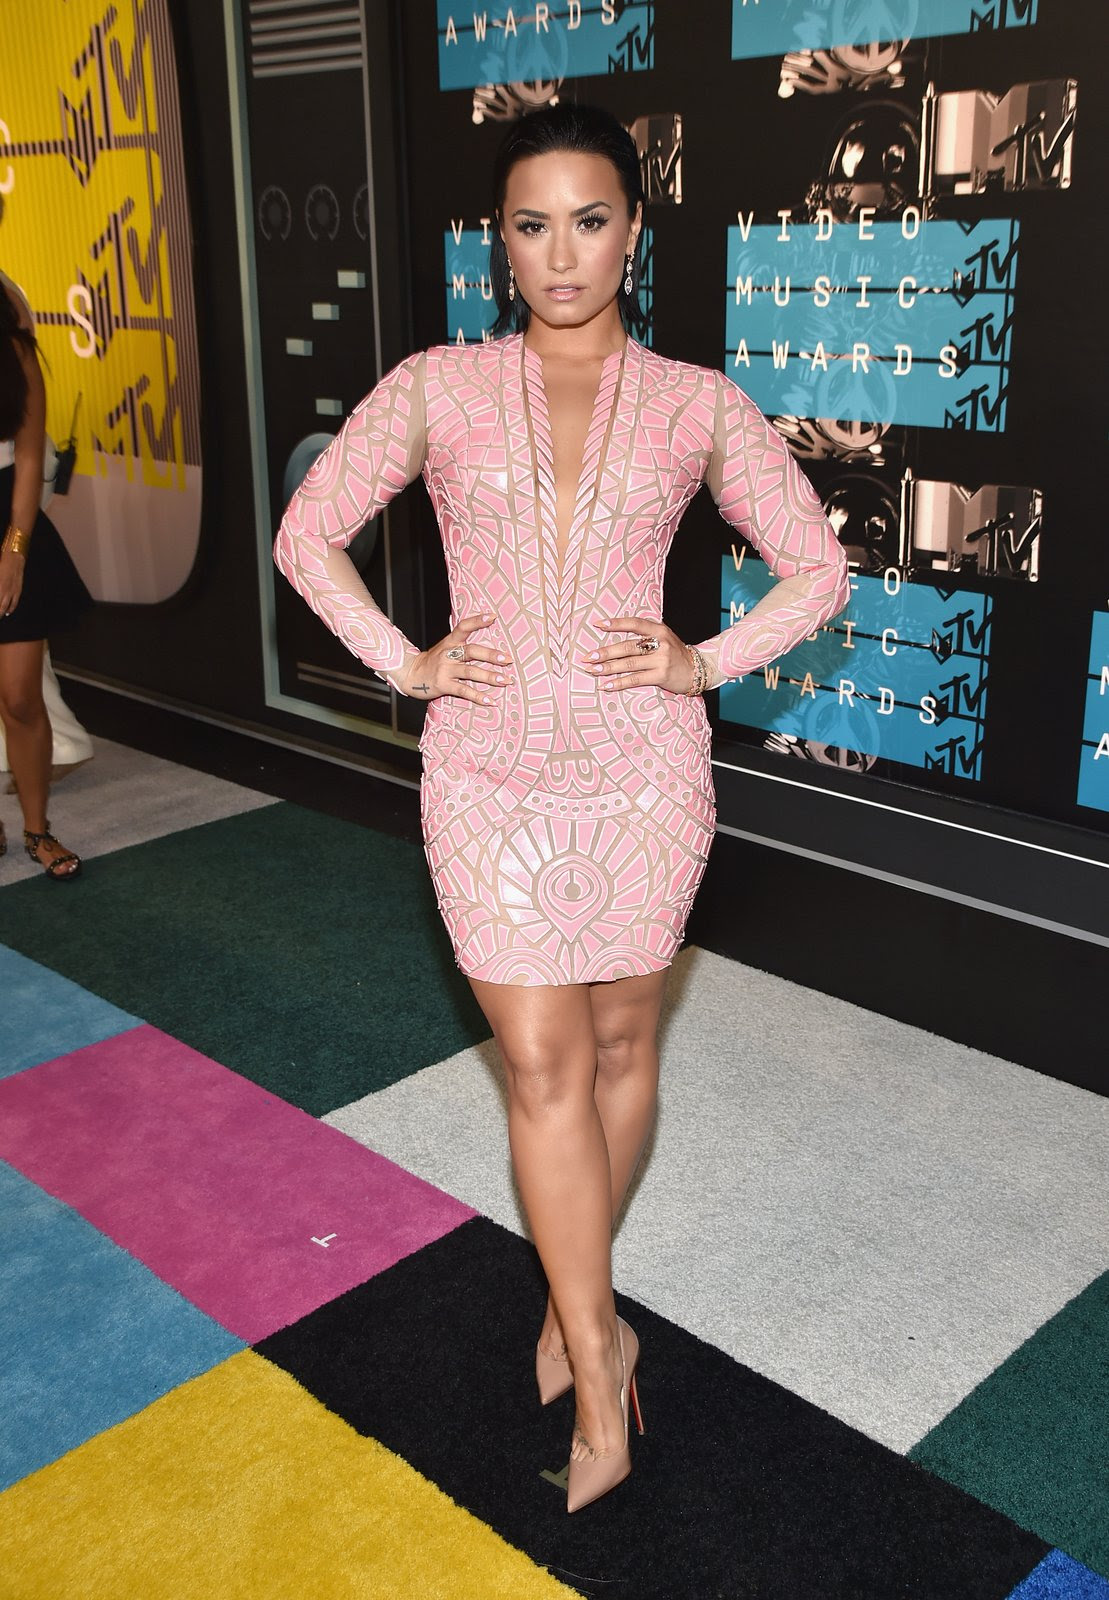 http://media.vogue.com/r/h_1600,w_1240/2015/08/30/demi-vma-2015.jpg